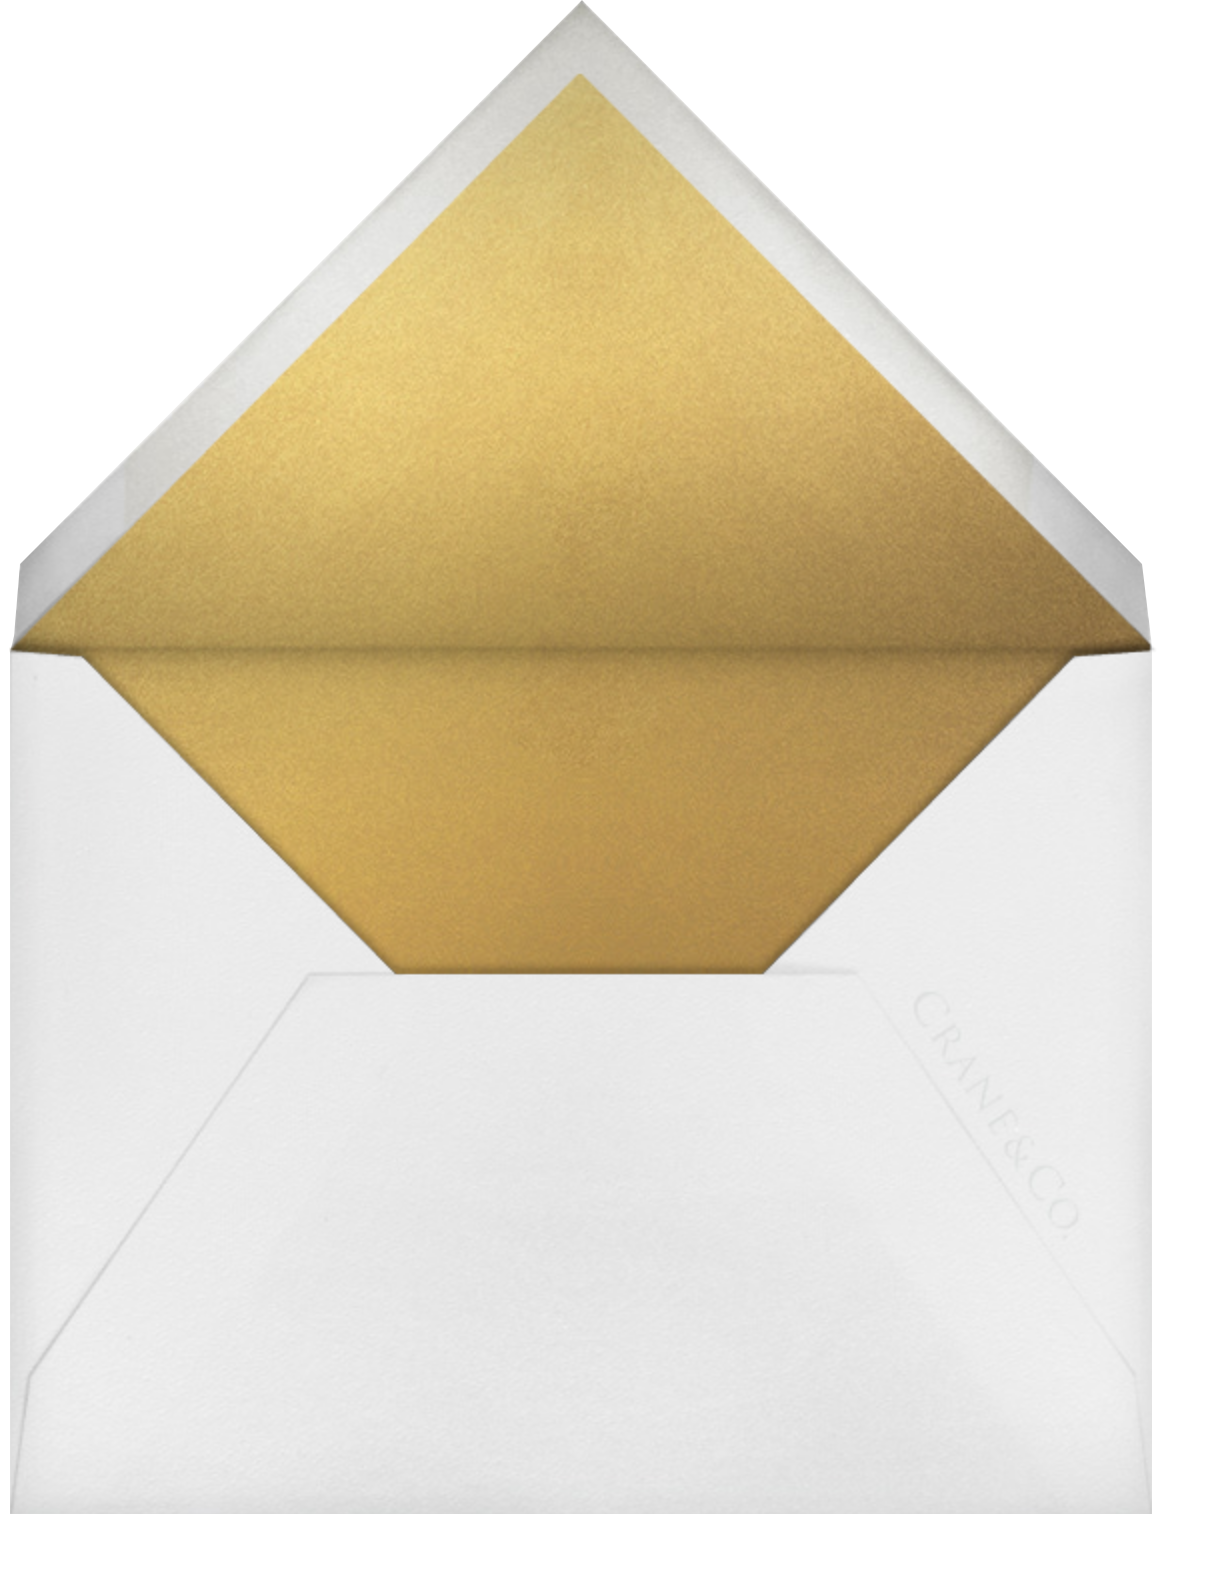 Marchmain (Thank You) - Medium Gold - Paperless Post - Personalized stationery - envelope back